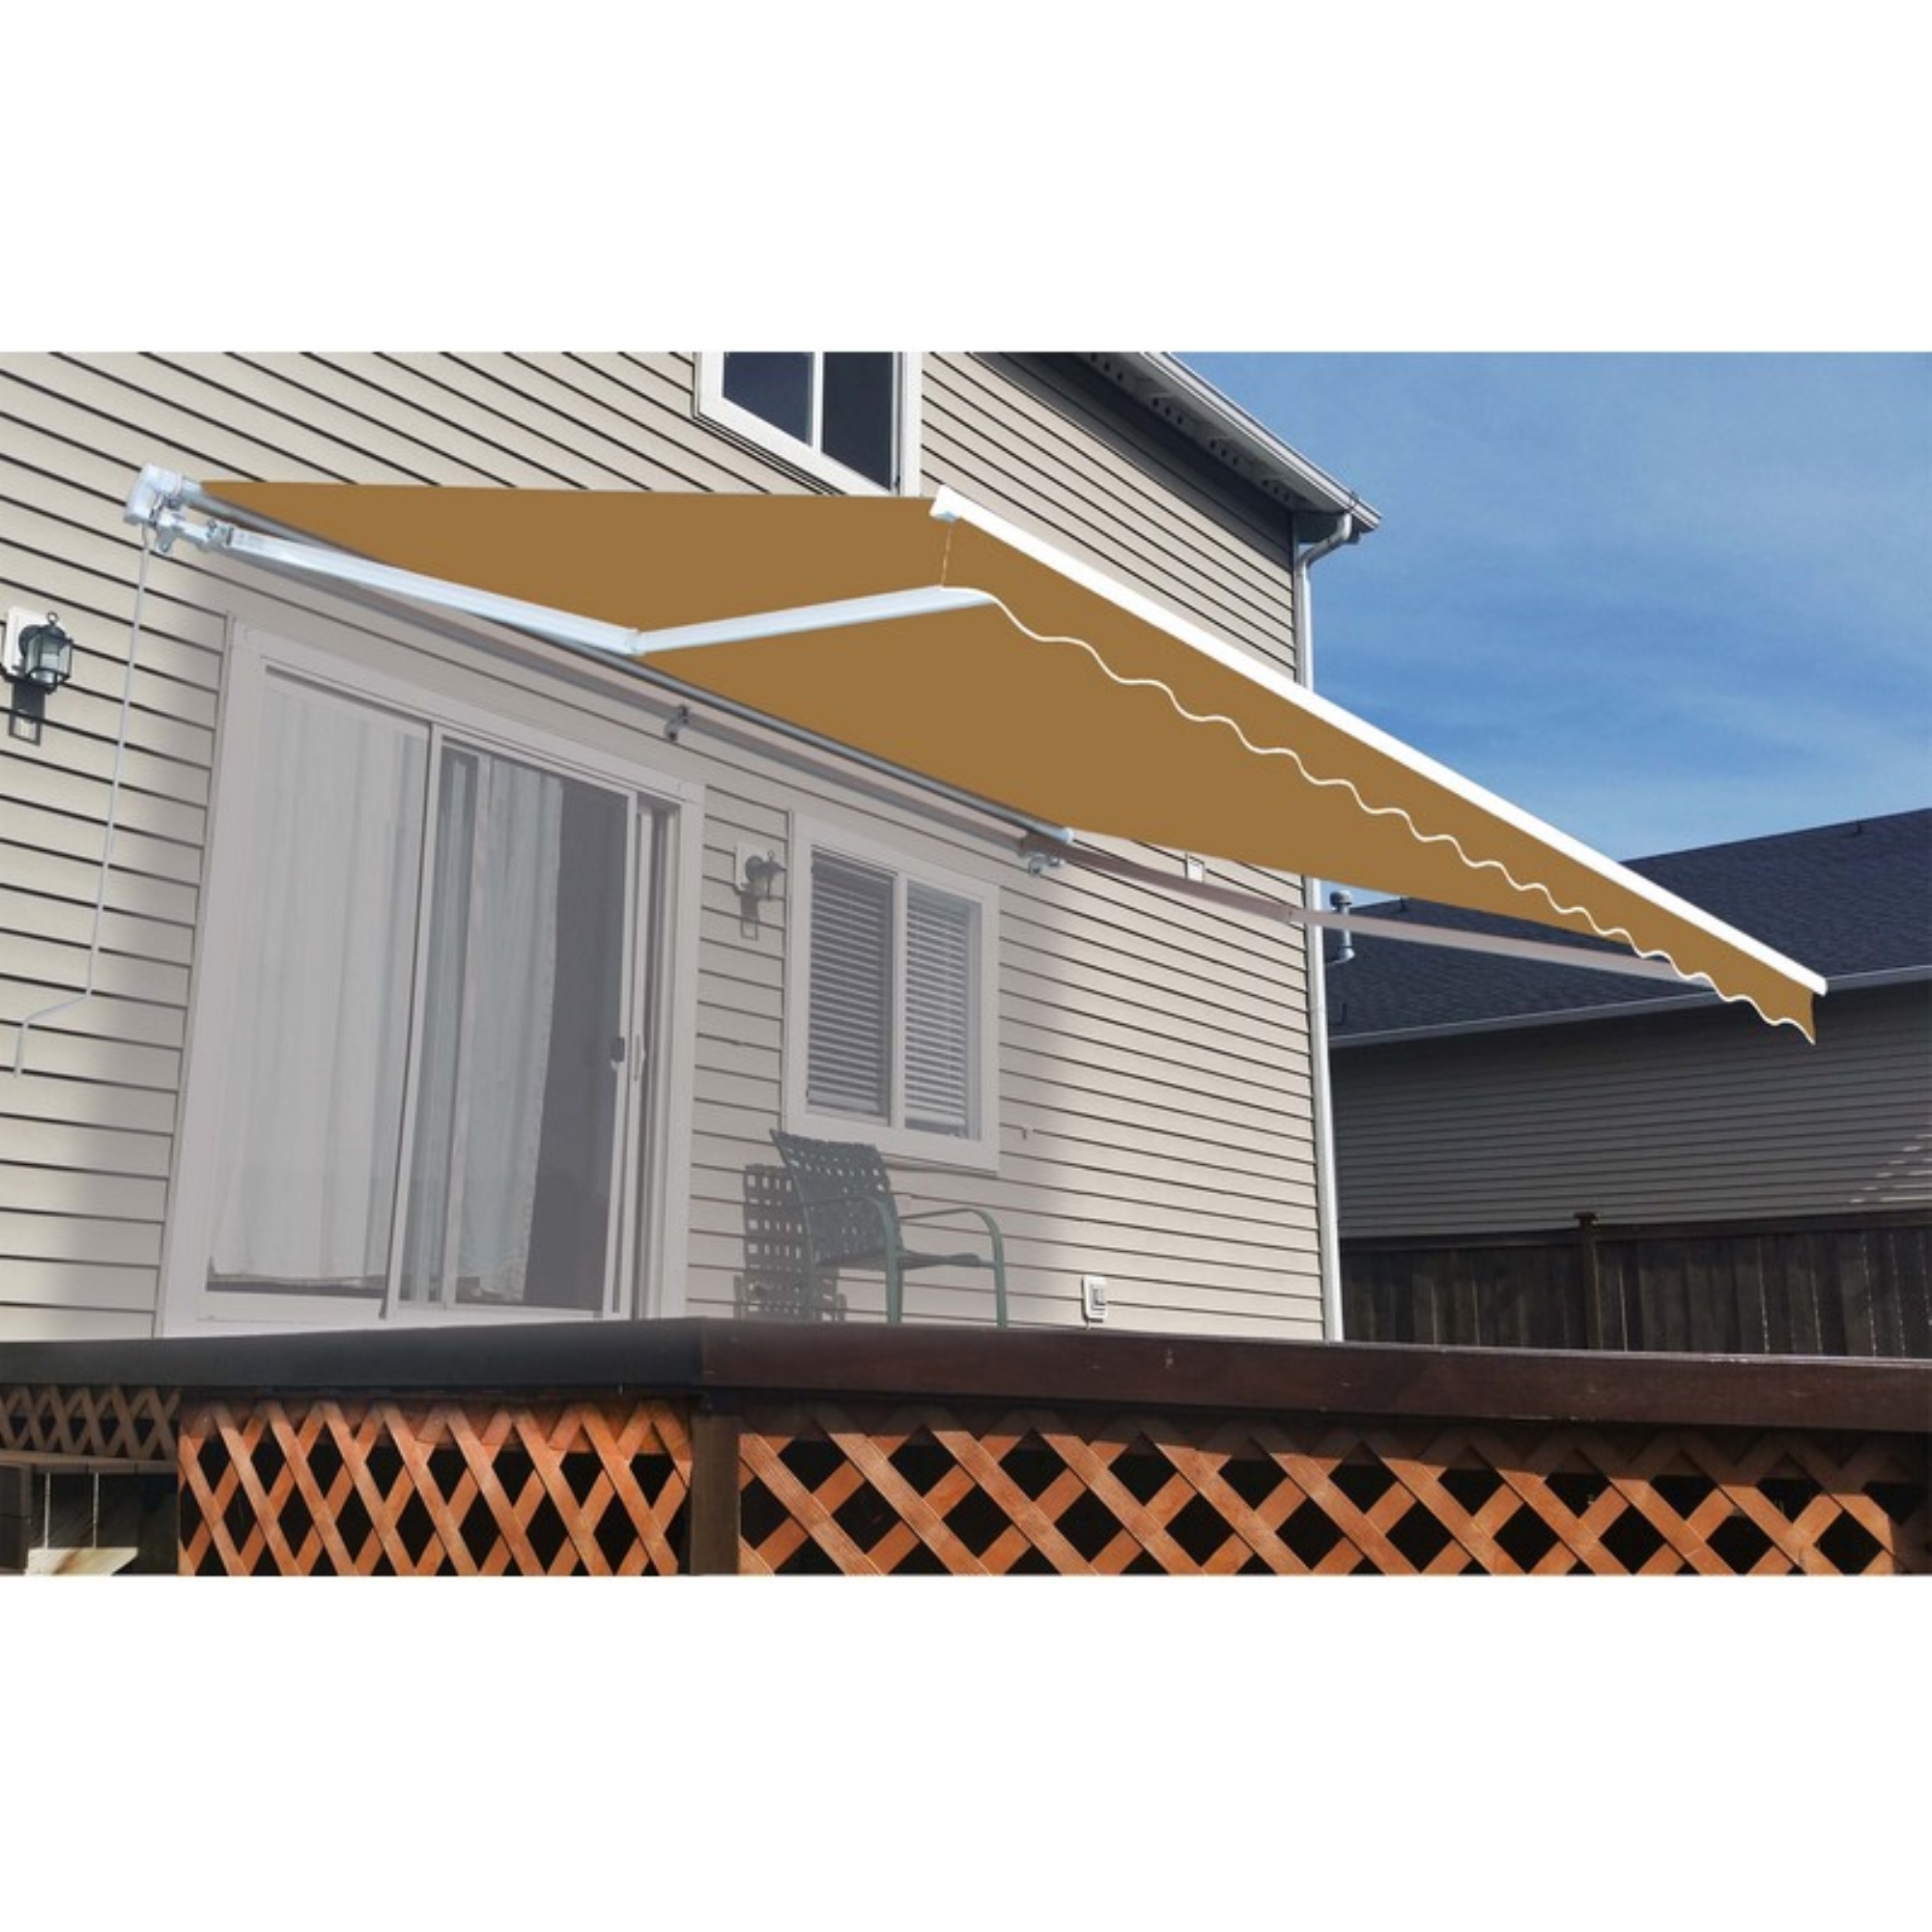 ALEKO Fabric Replacement For 10x8 Ft Retractable Awning Multistripe Yellow Color